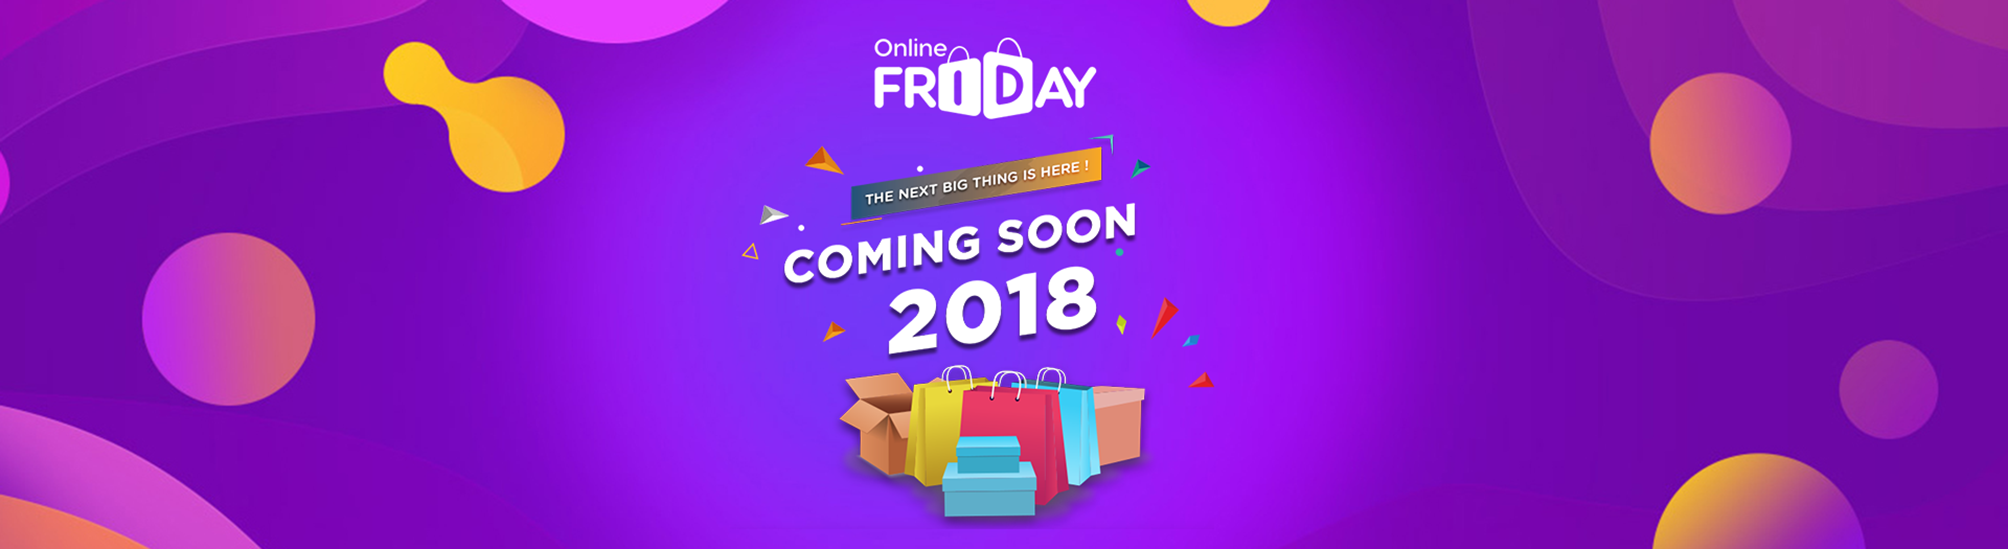 Online Friday 2018